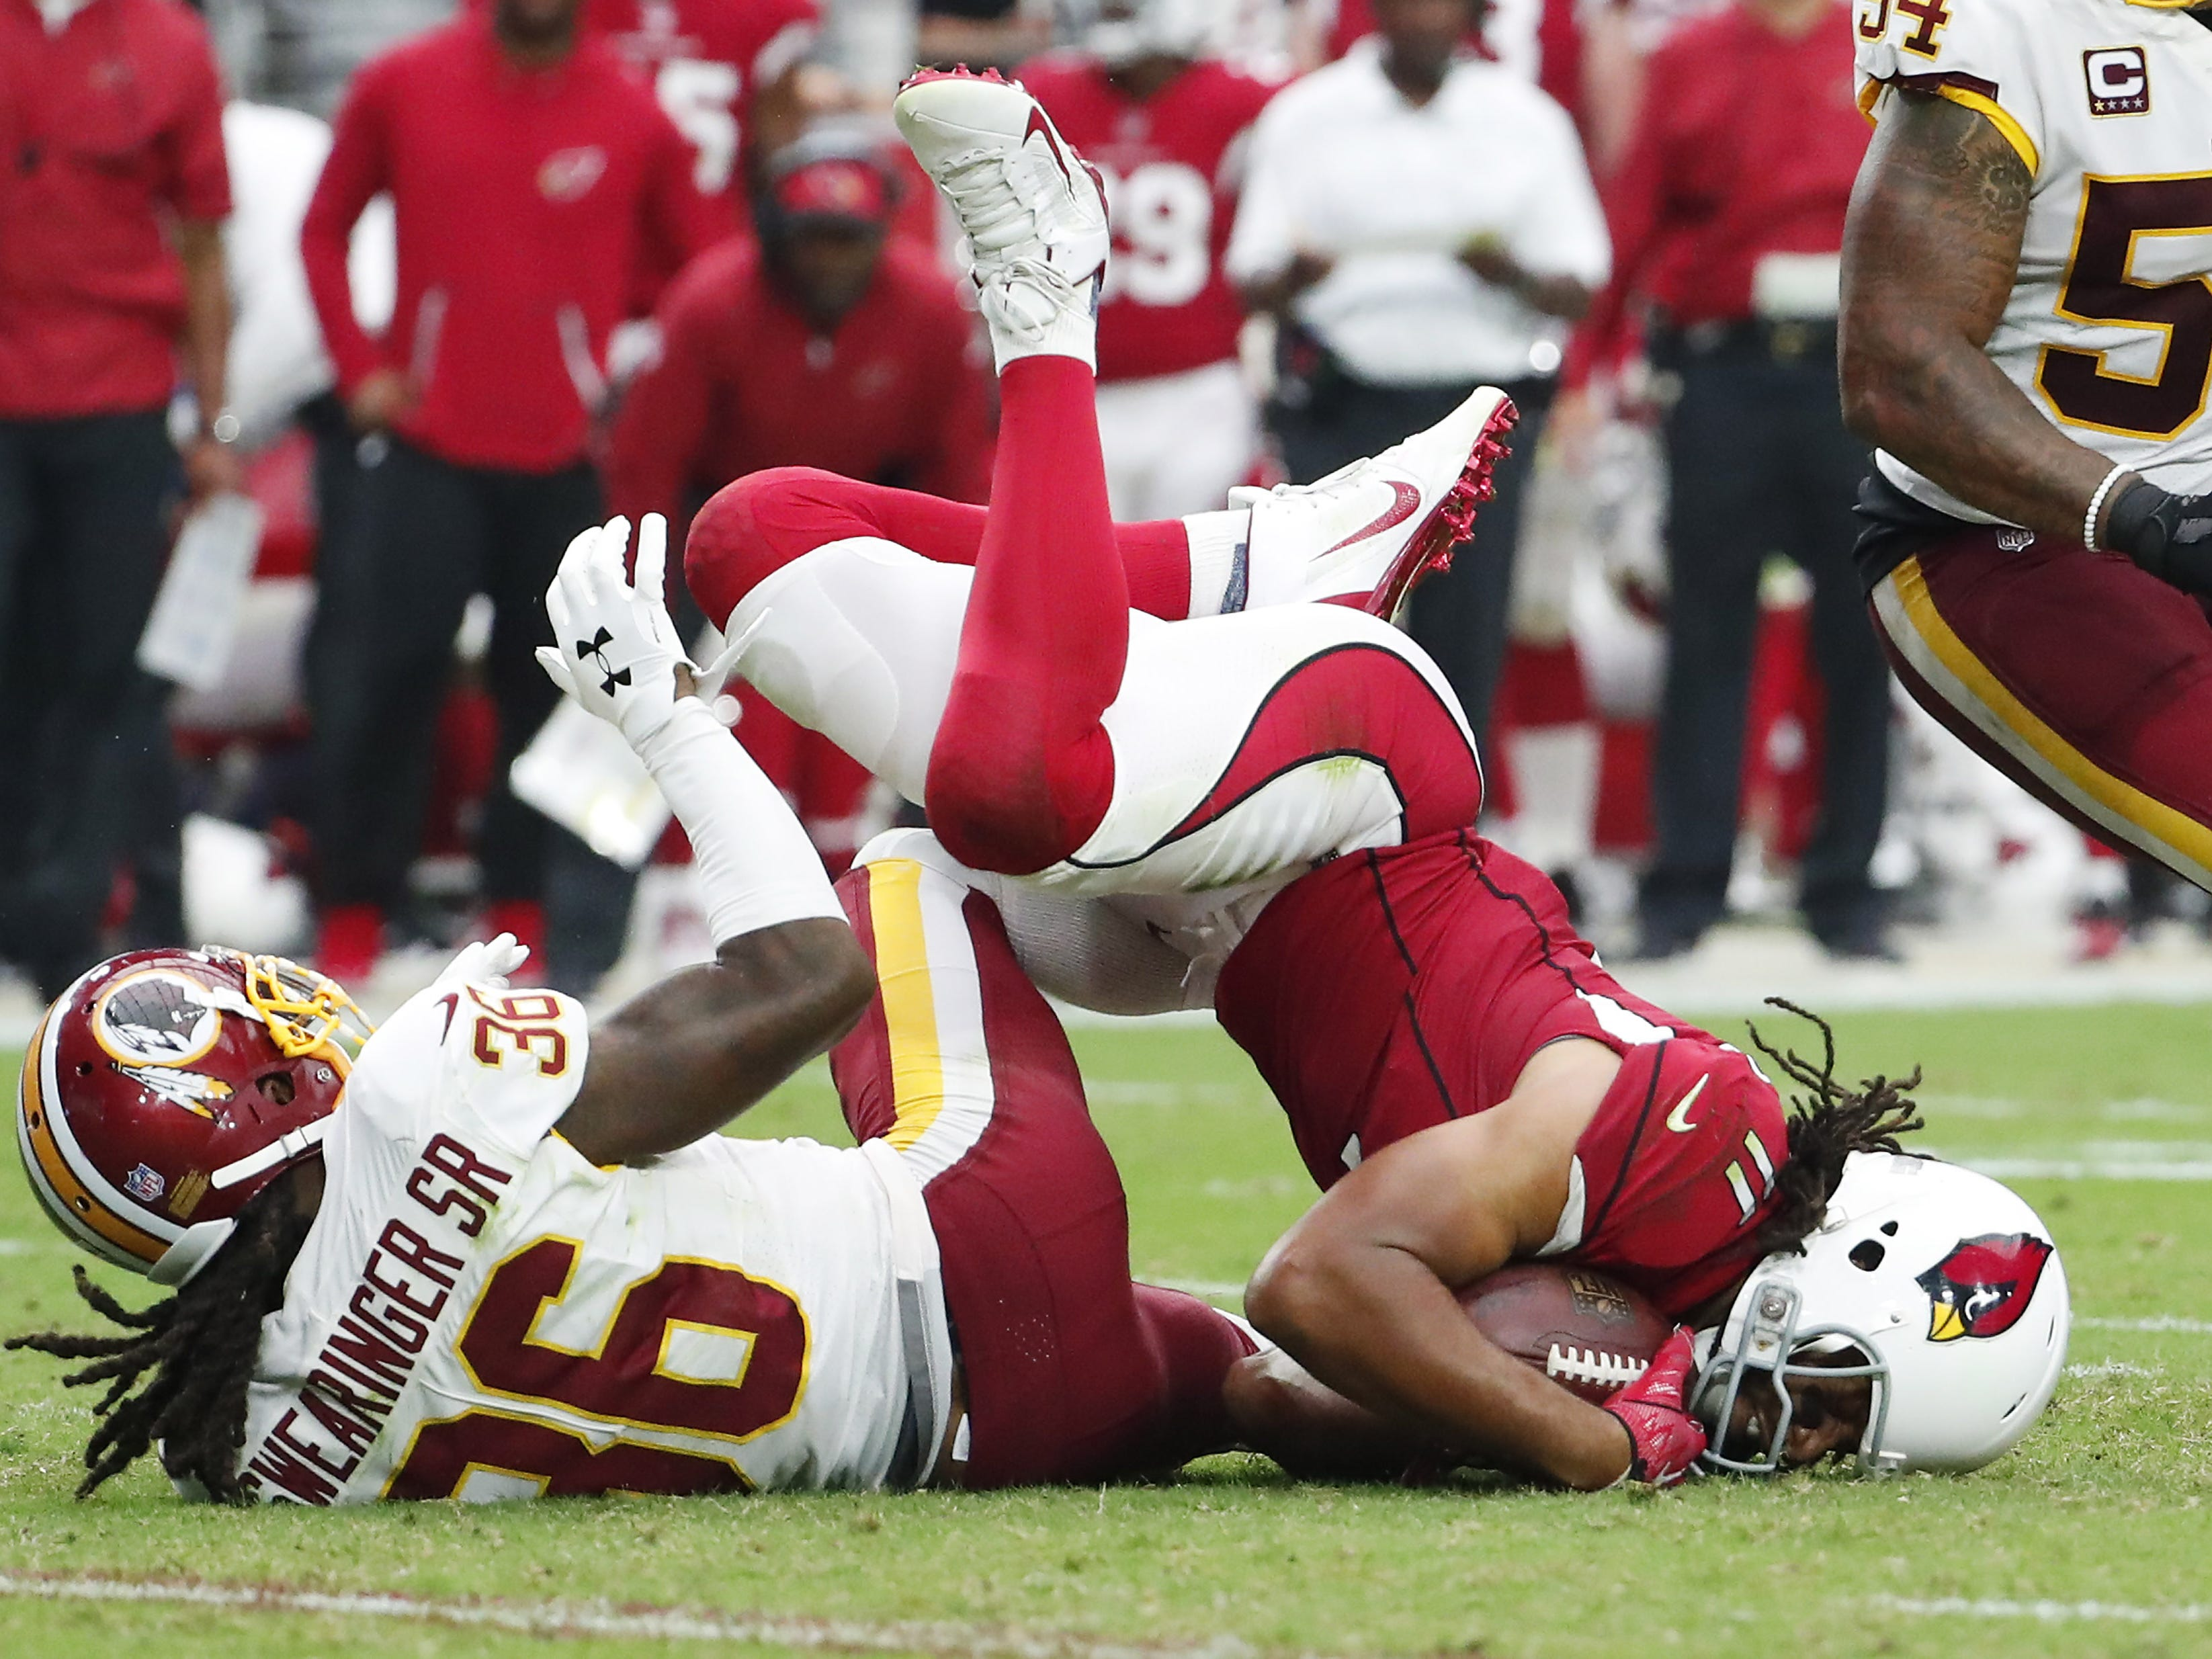 Arizona Cardinals wide receiver Larry Fitzgerald (11) is tackled by Washington Redskins defensive back D.J. Swearinger (36) after a catch during the third quarter at State Farm Stadium in Glendale, Ariz. September 9. 2018.